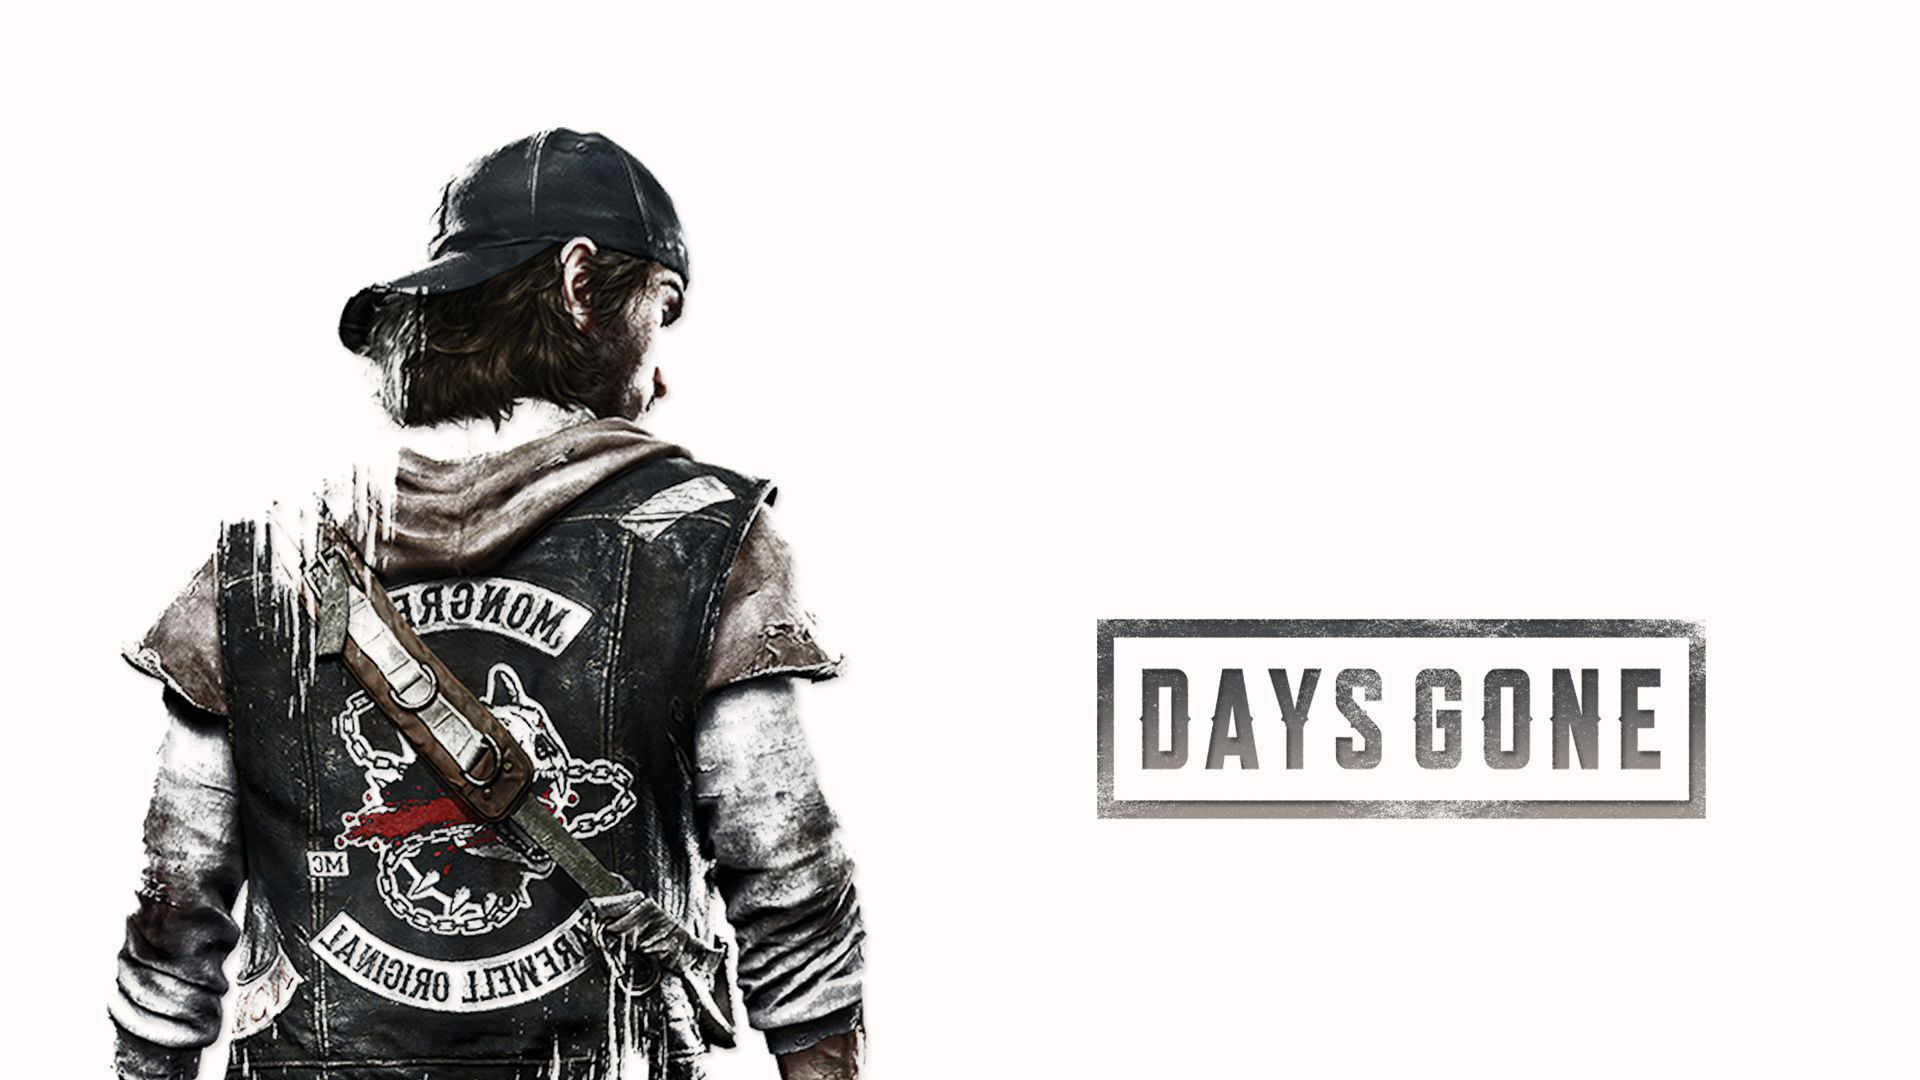 Days Gone High Quality Wallpapers